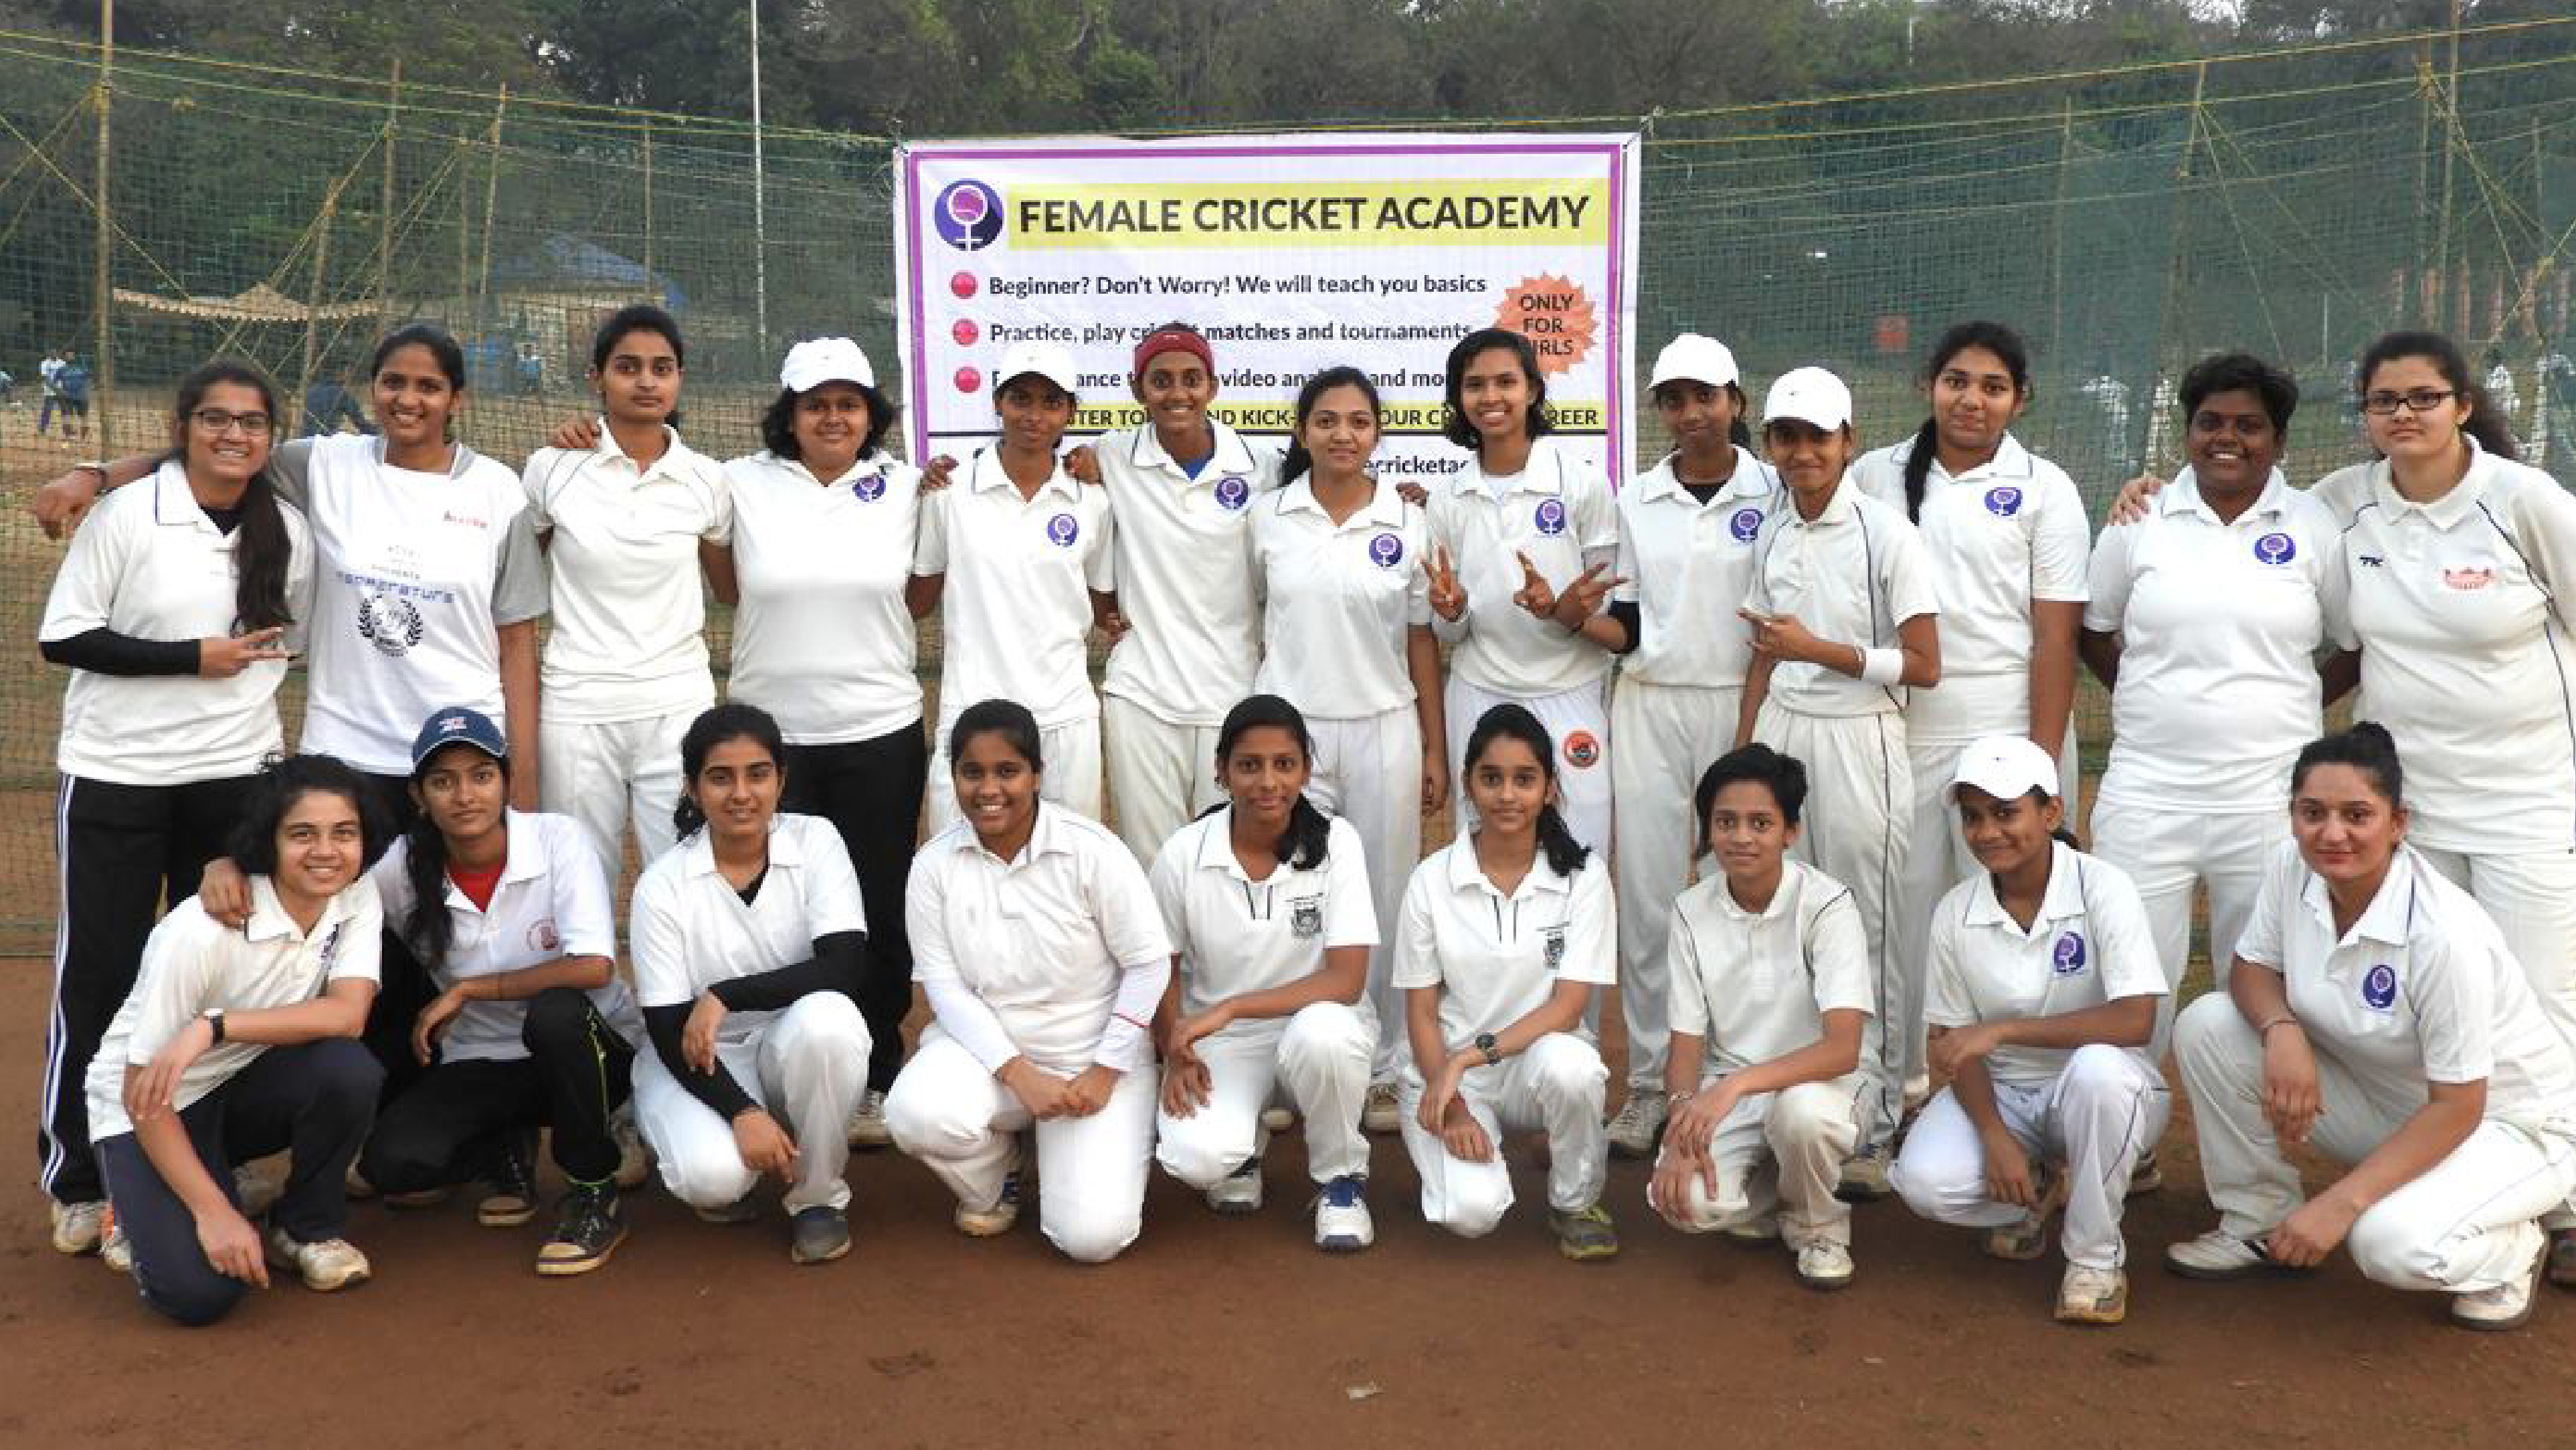 Female Cricket is inspiring, empowering and celebrating women's achievements in the sport